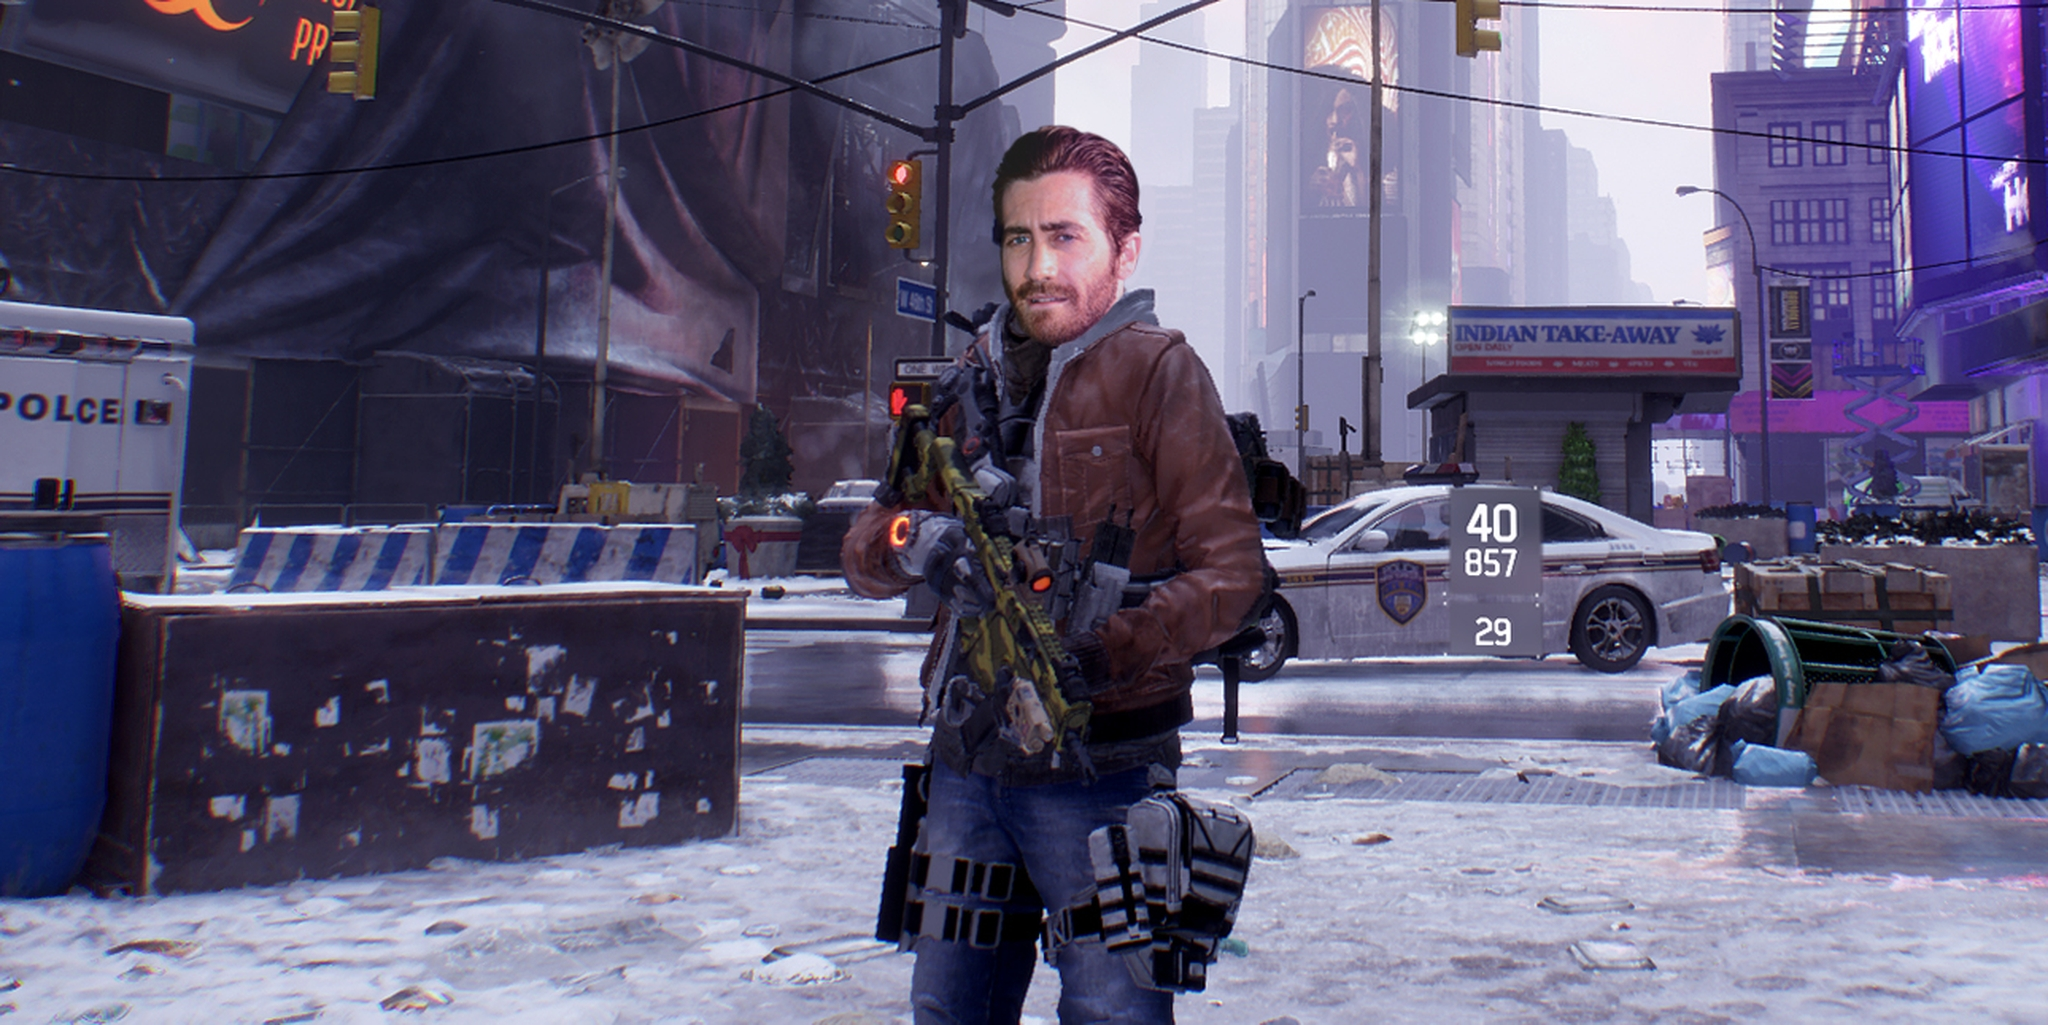 The Division movie adaptation starring Jake Gyllenhaal might not suck